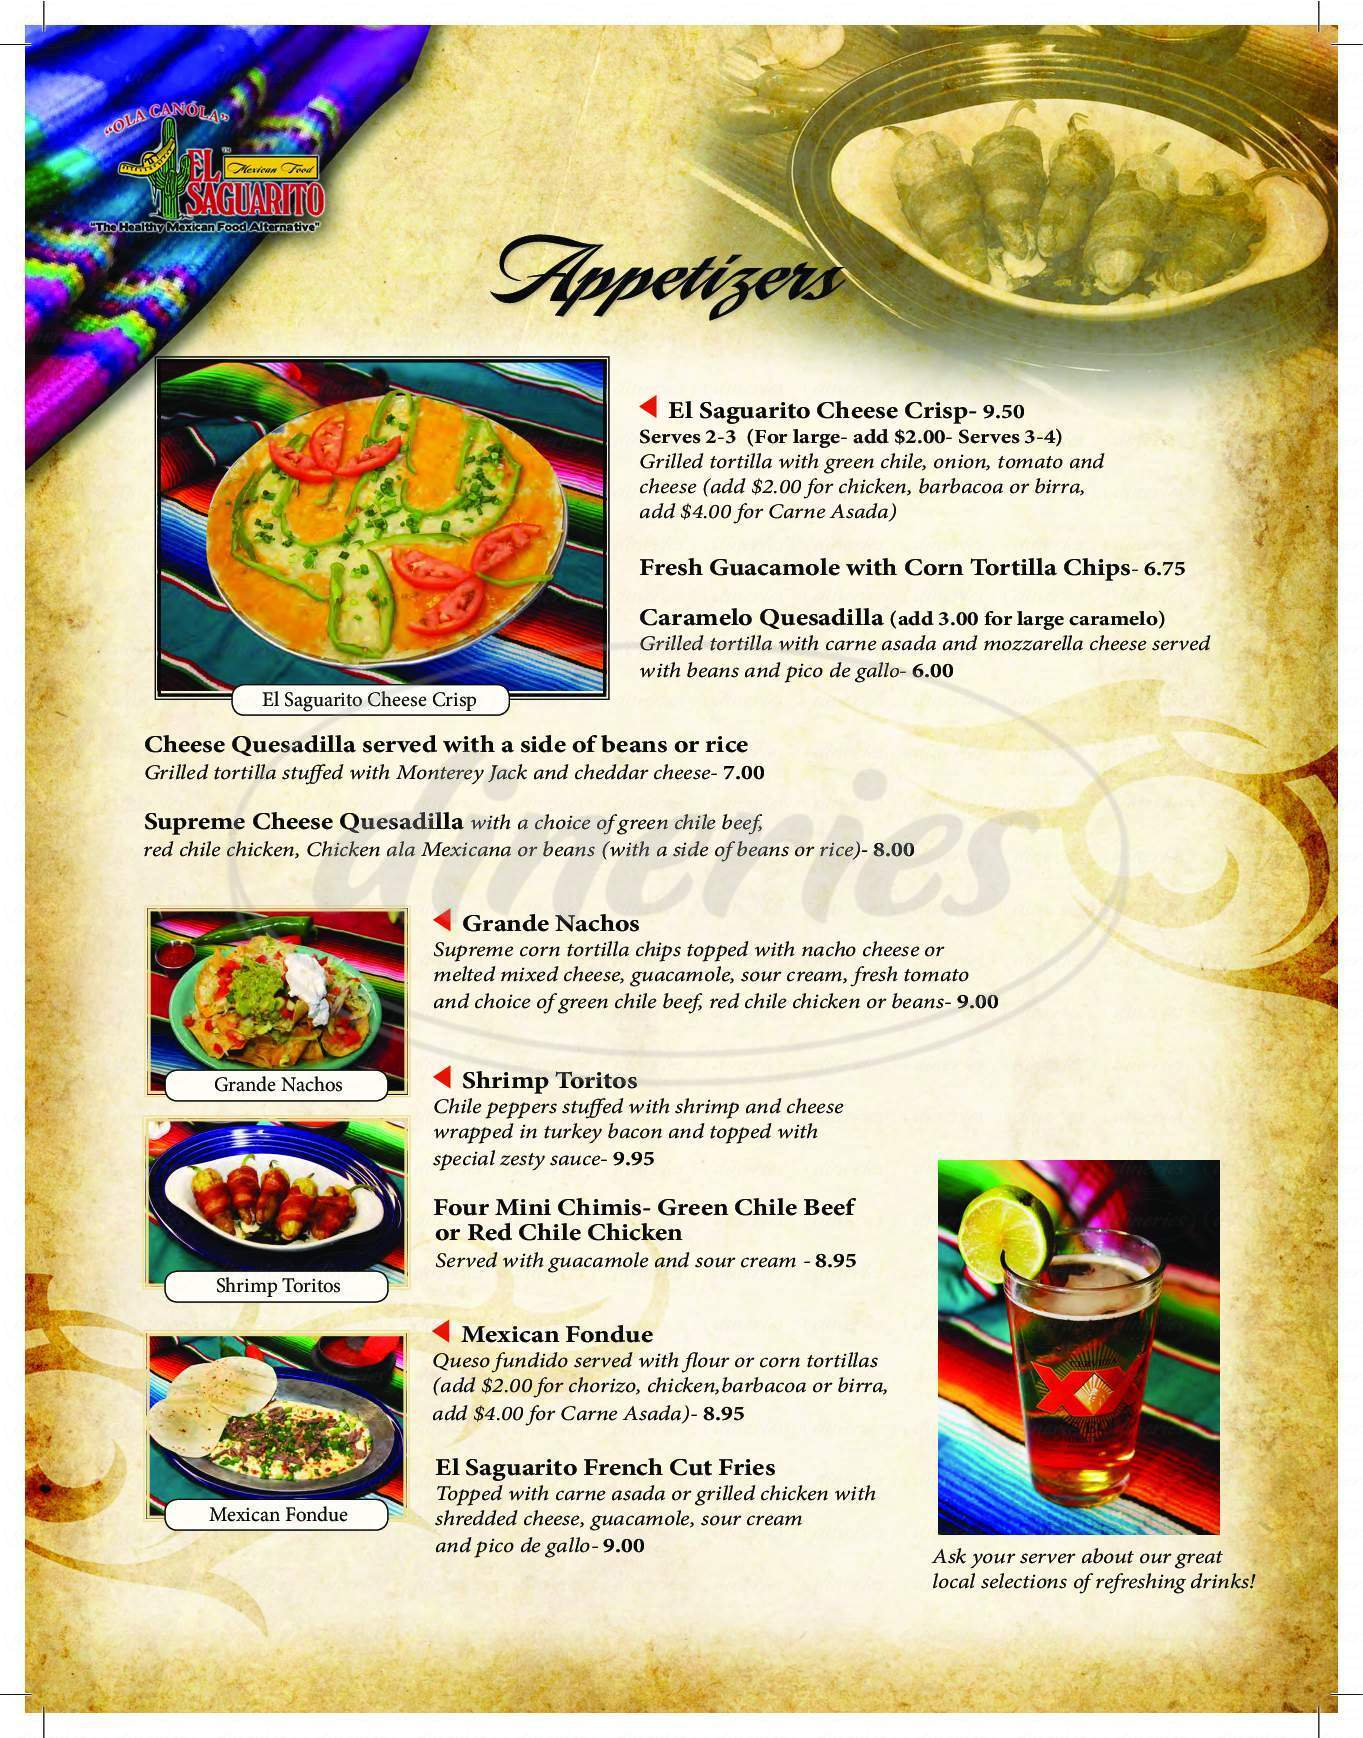 menu for El Saguarito